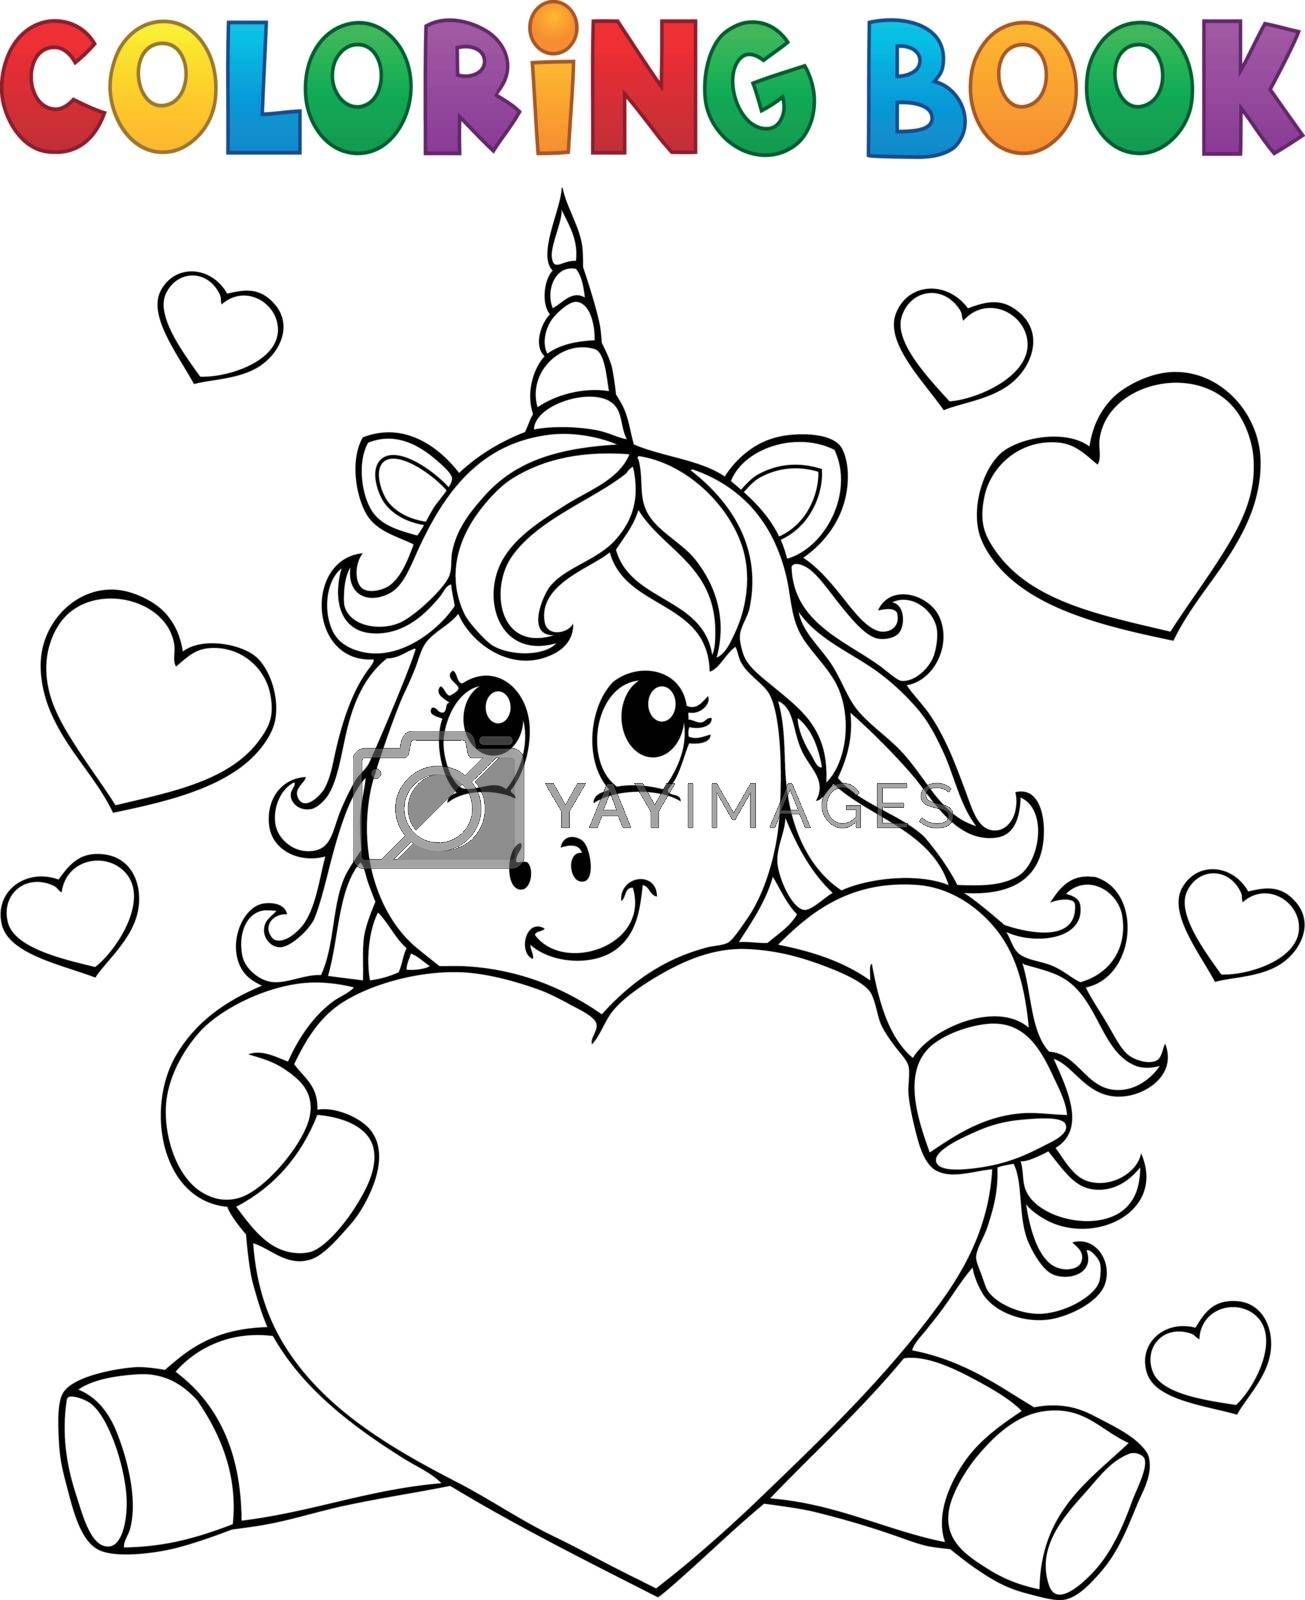 Coloring book Valentine unicorn theme 1 - eps10 vector illustration.